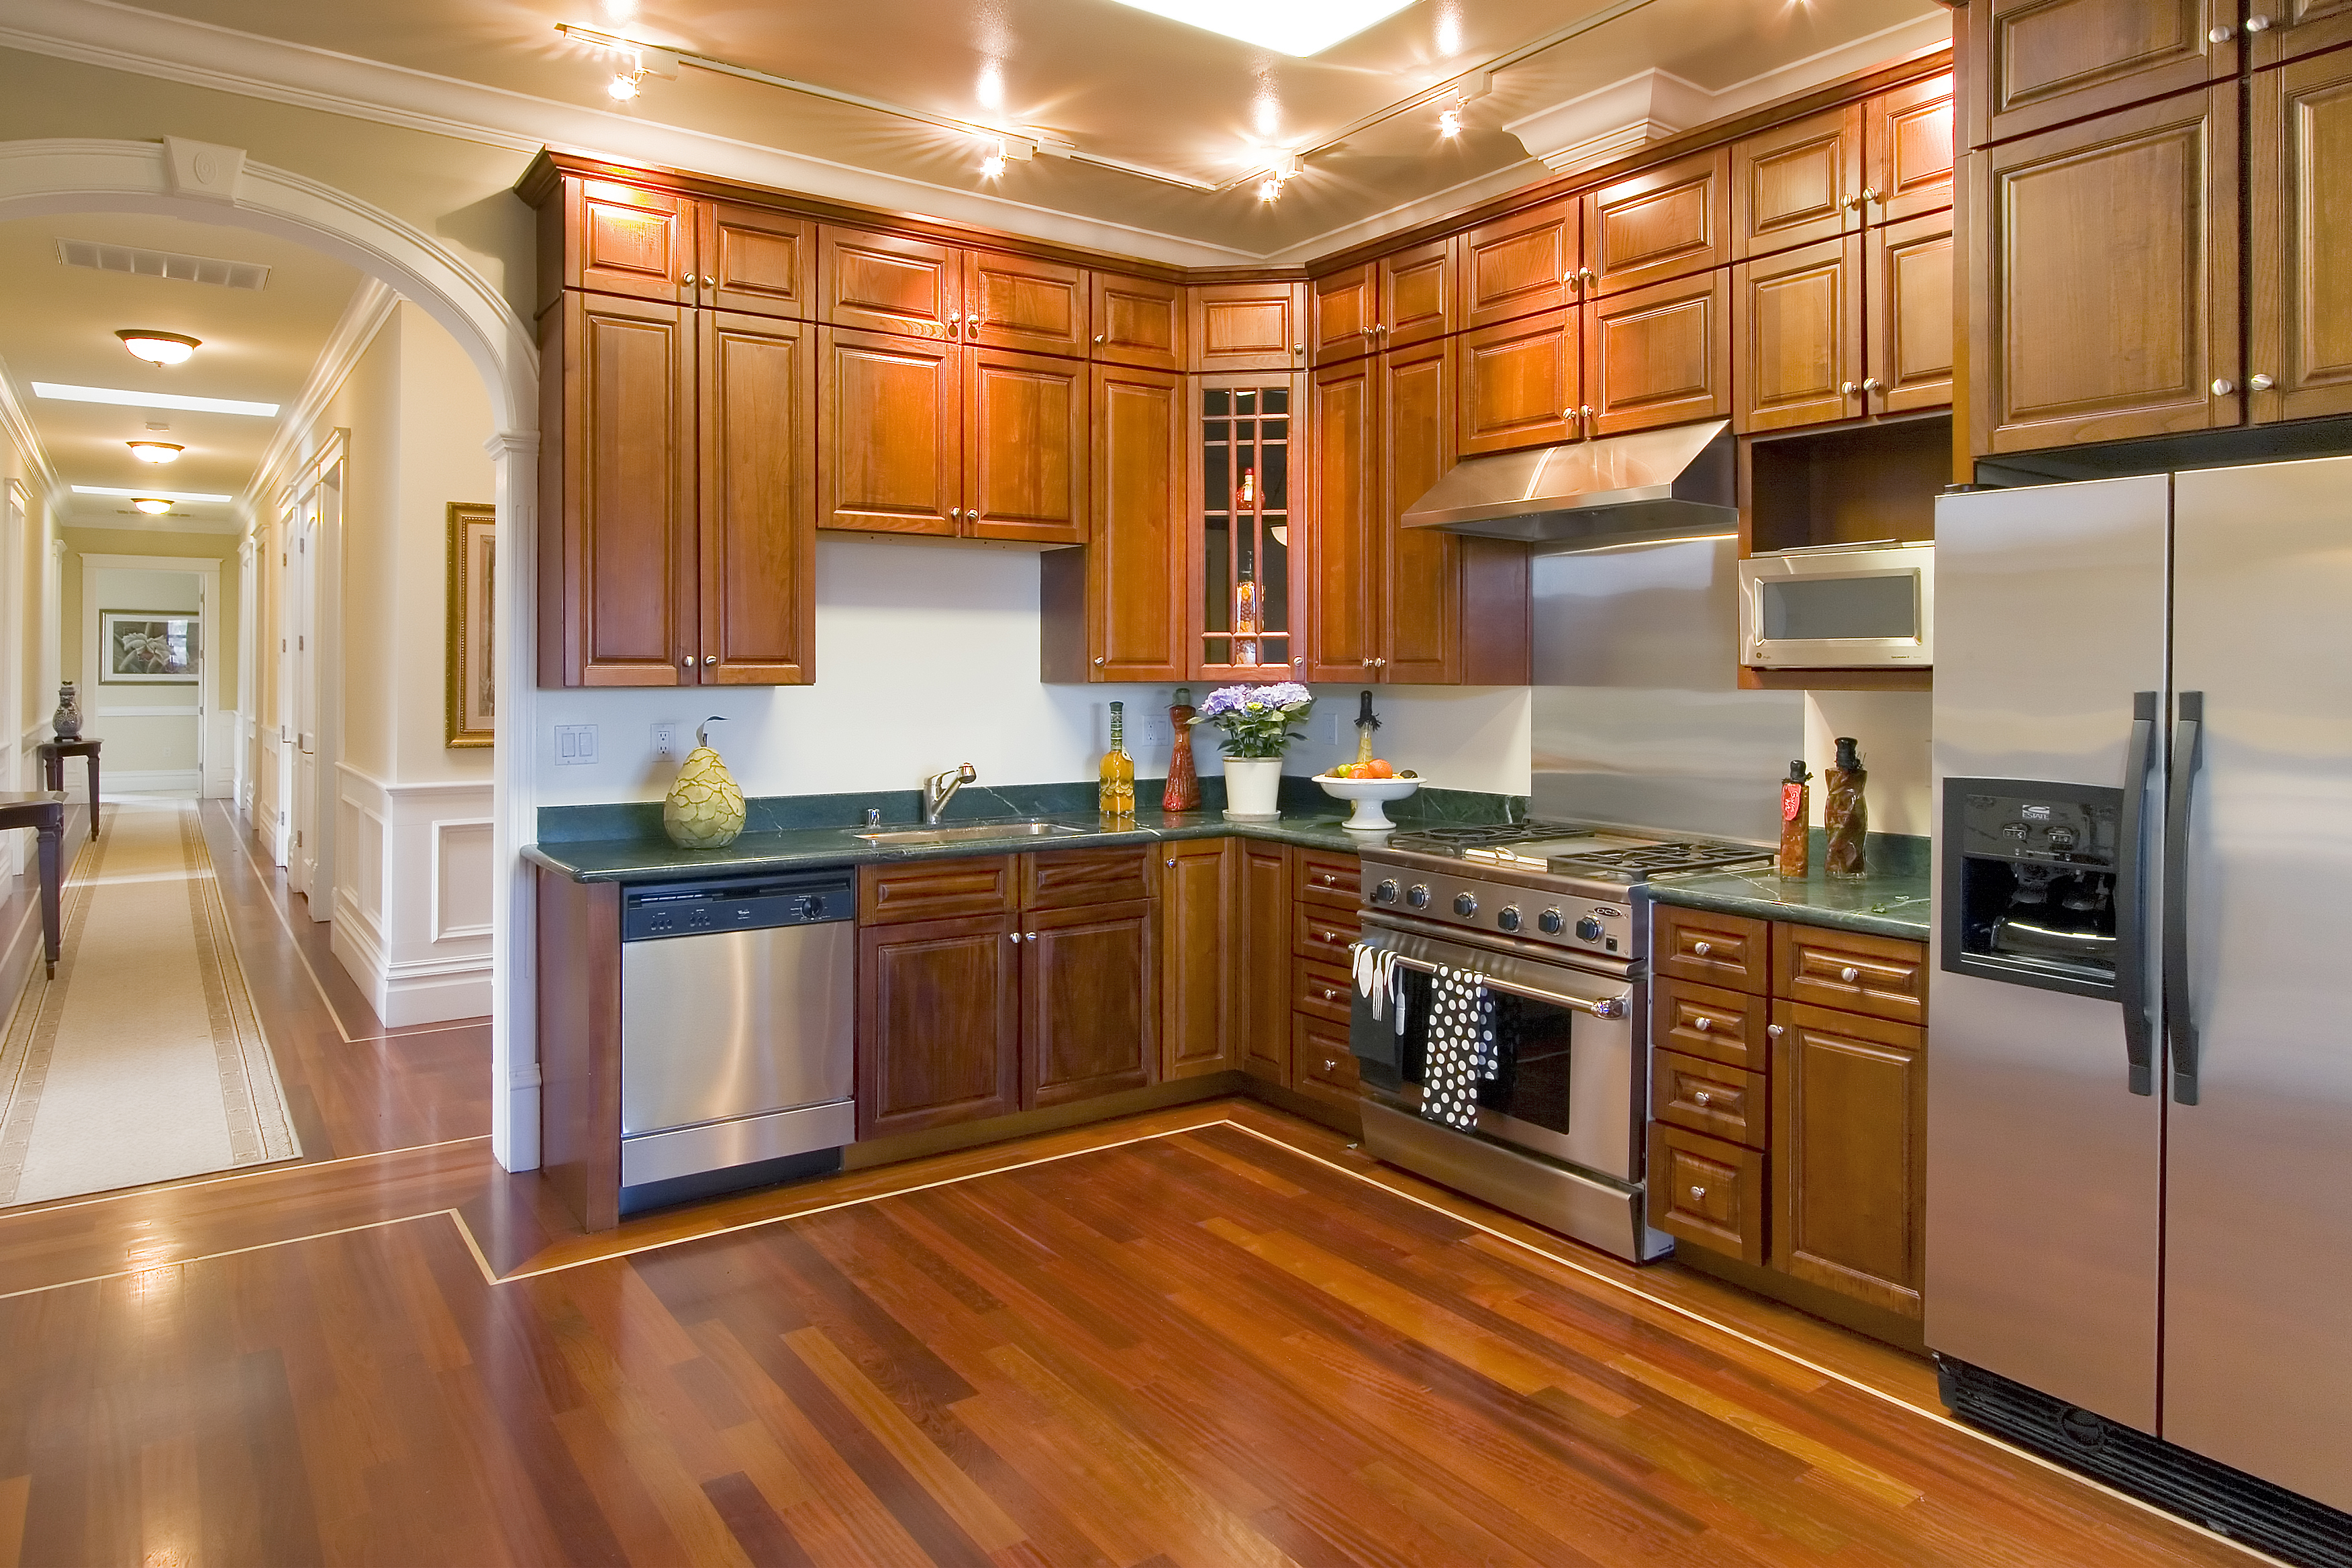 Luxury Kitchen in Apple Cider